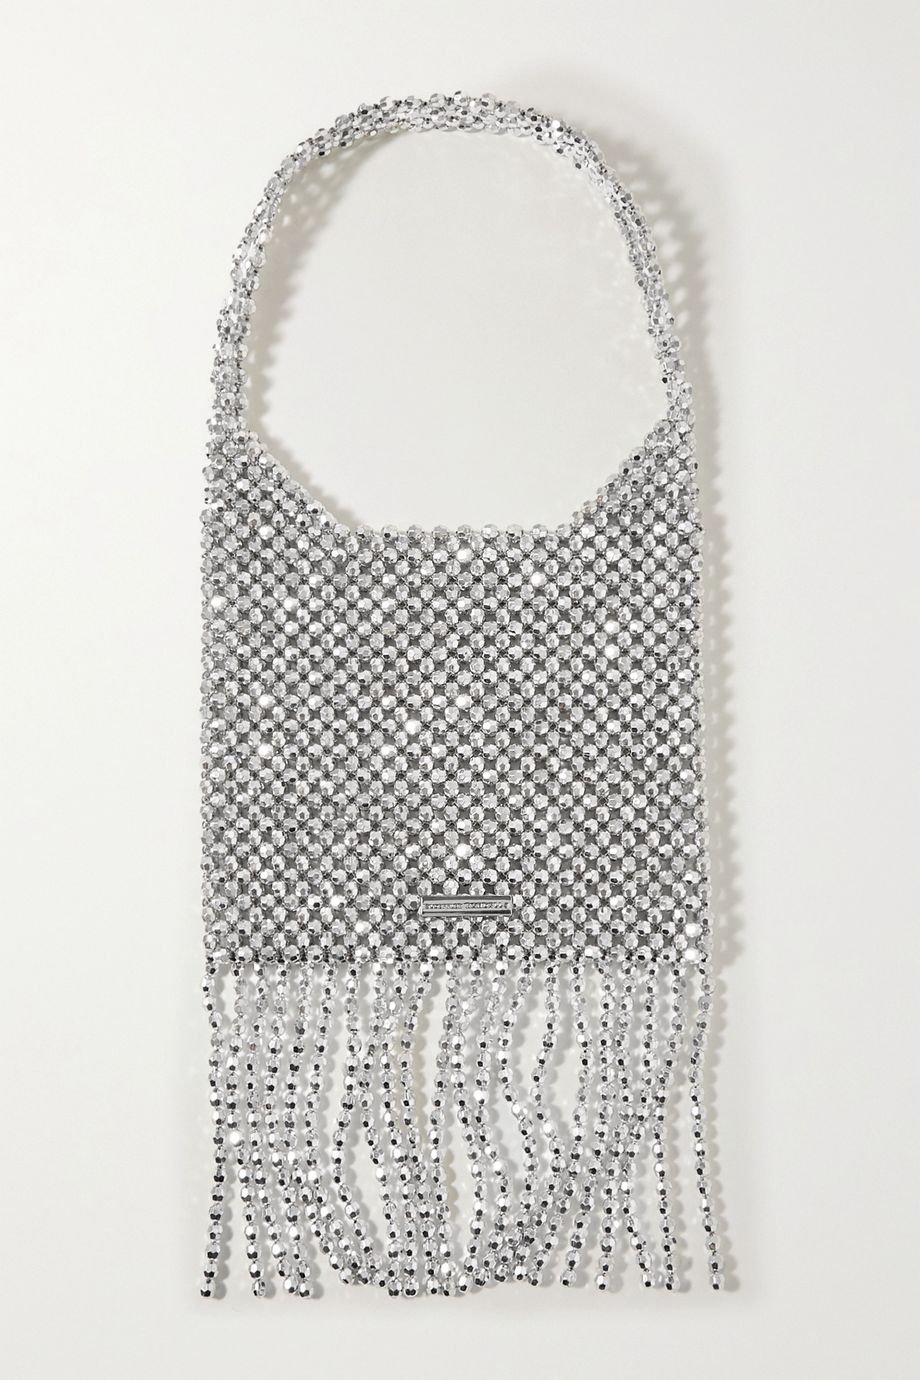 Loeffler Randall Cher fringed metallic beaded shoulder bag